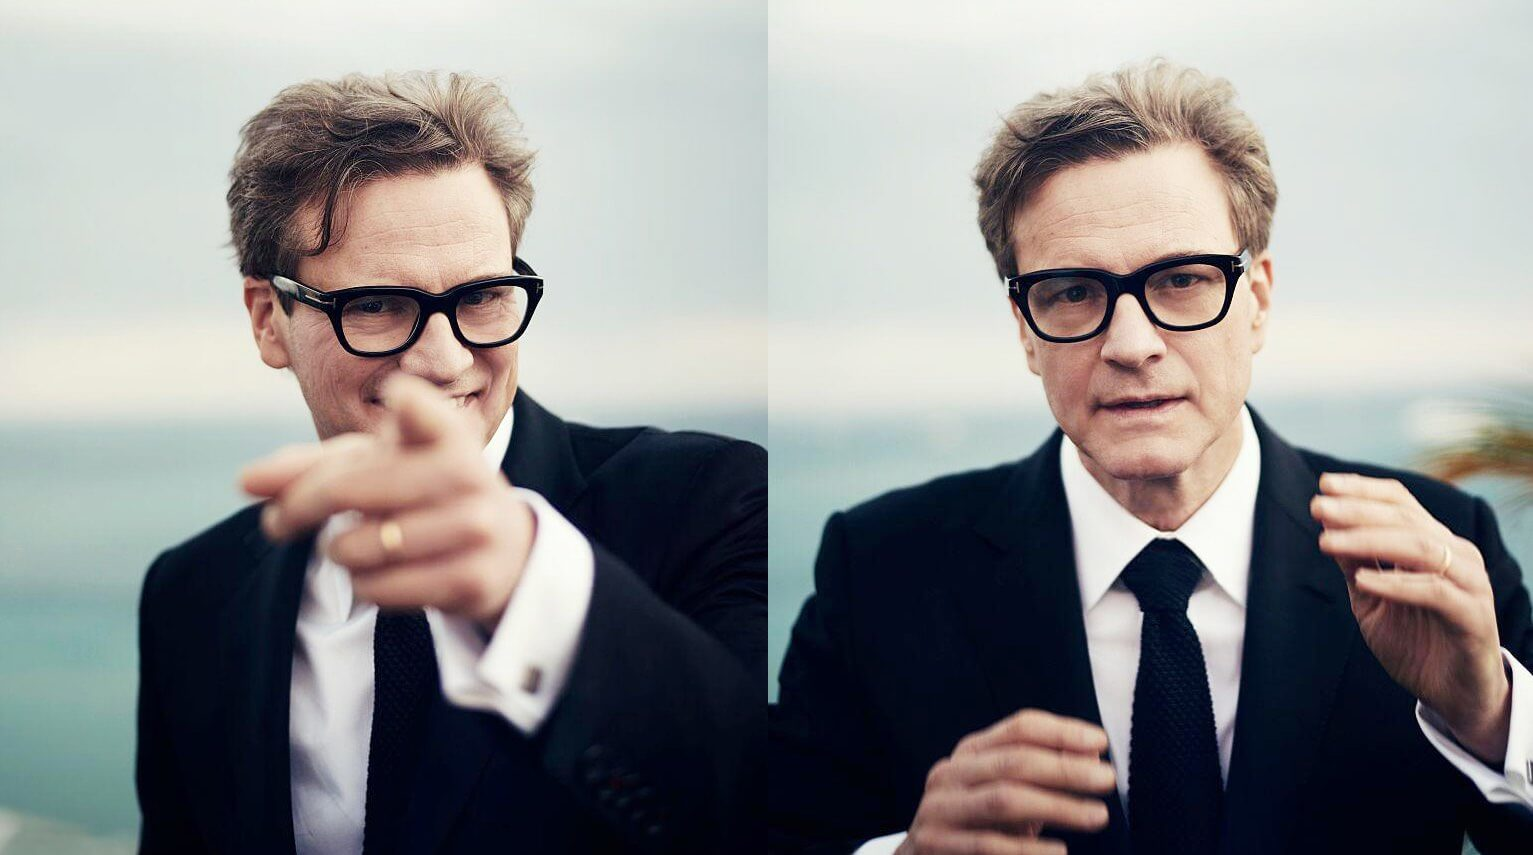 How to Write and Shoot Action Movies Like Kingsman - Colin Firth Dyptich